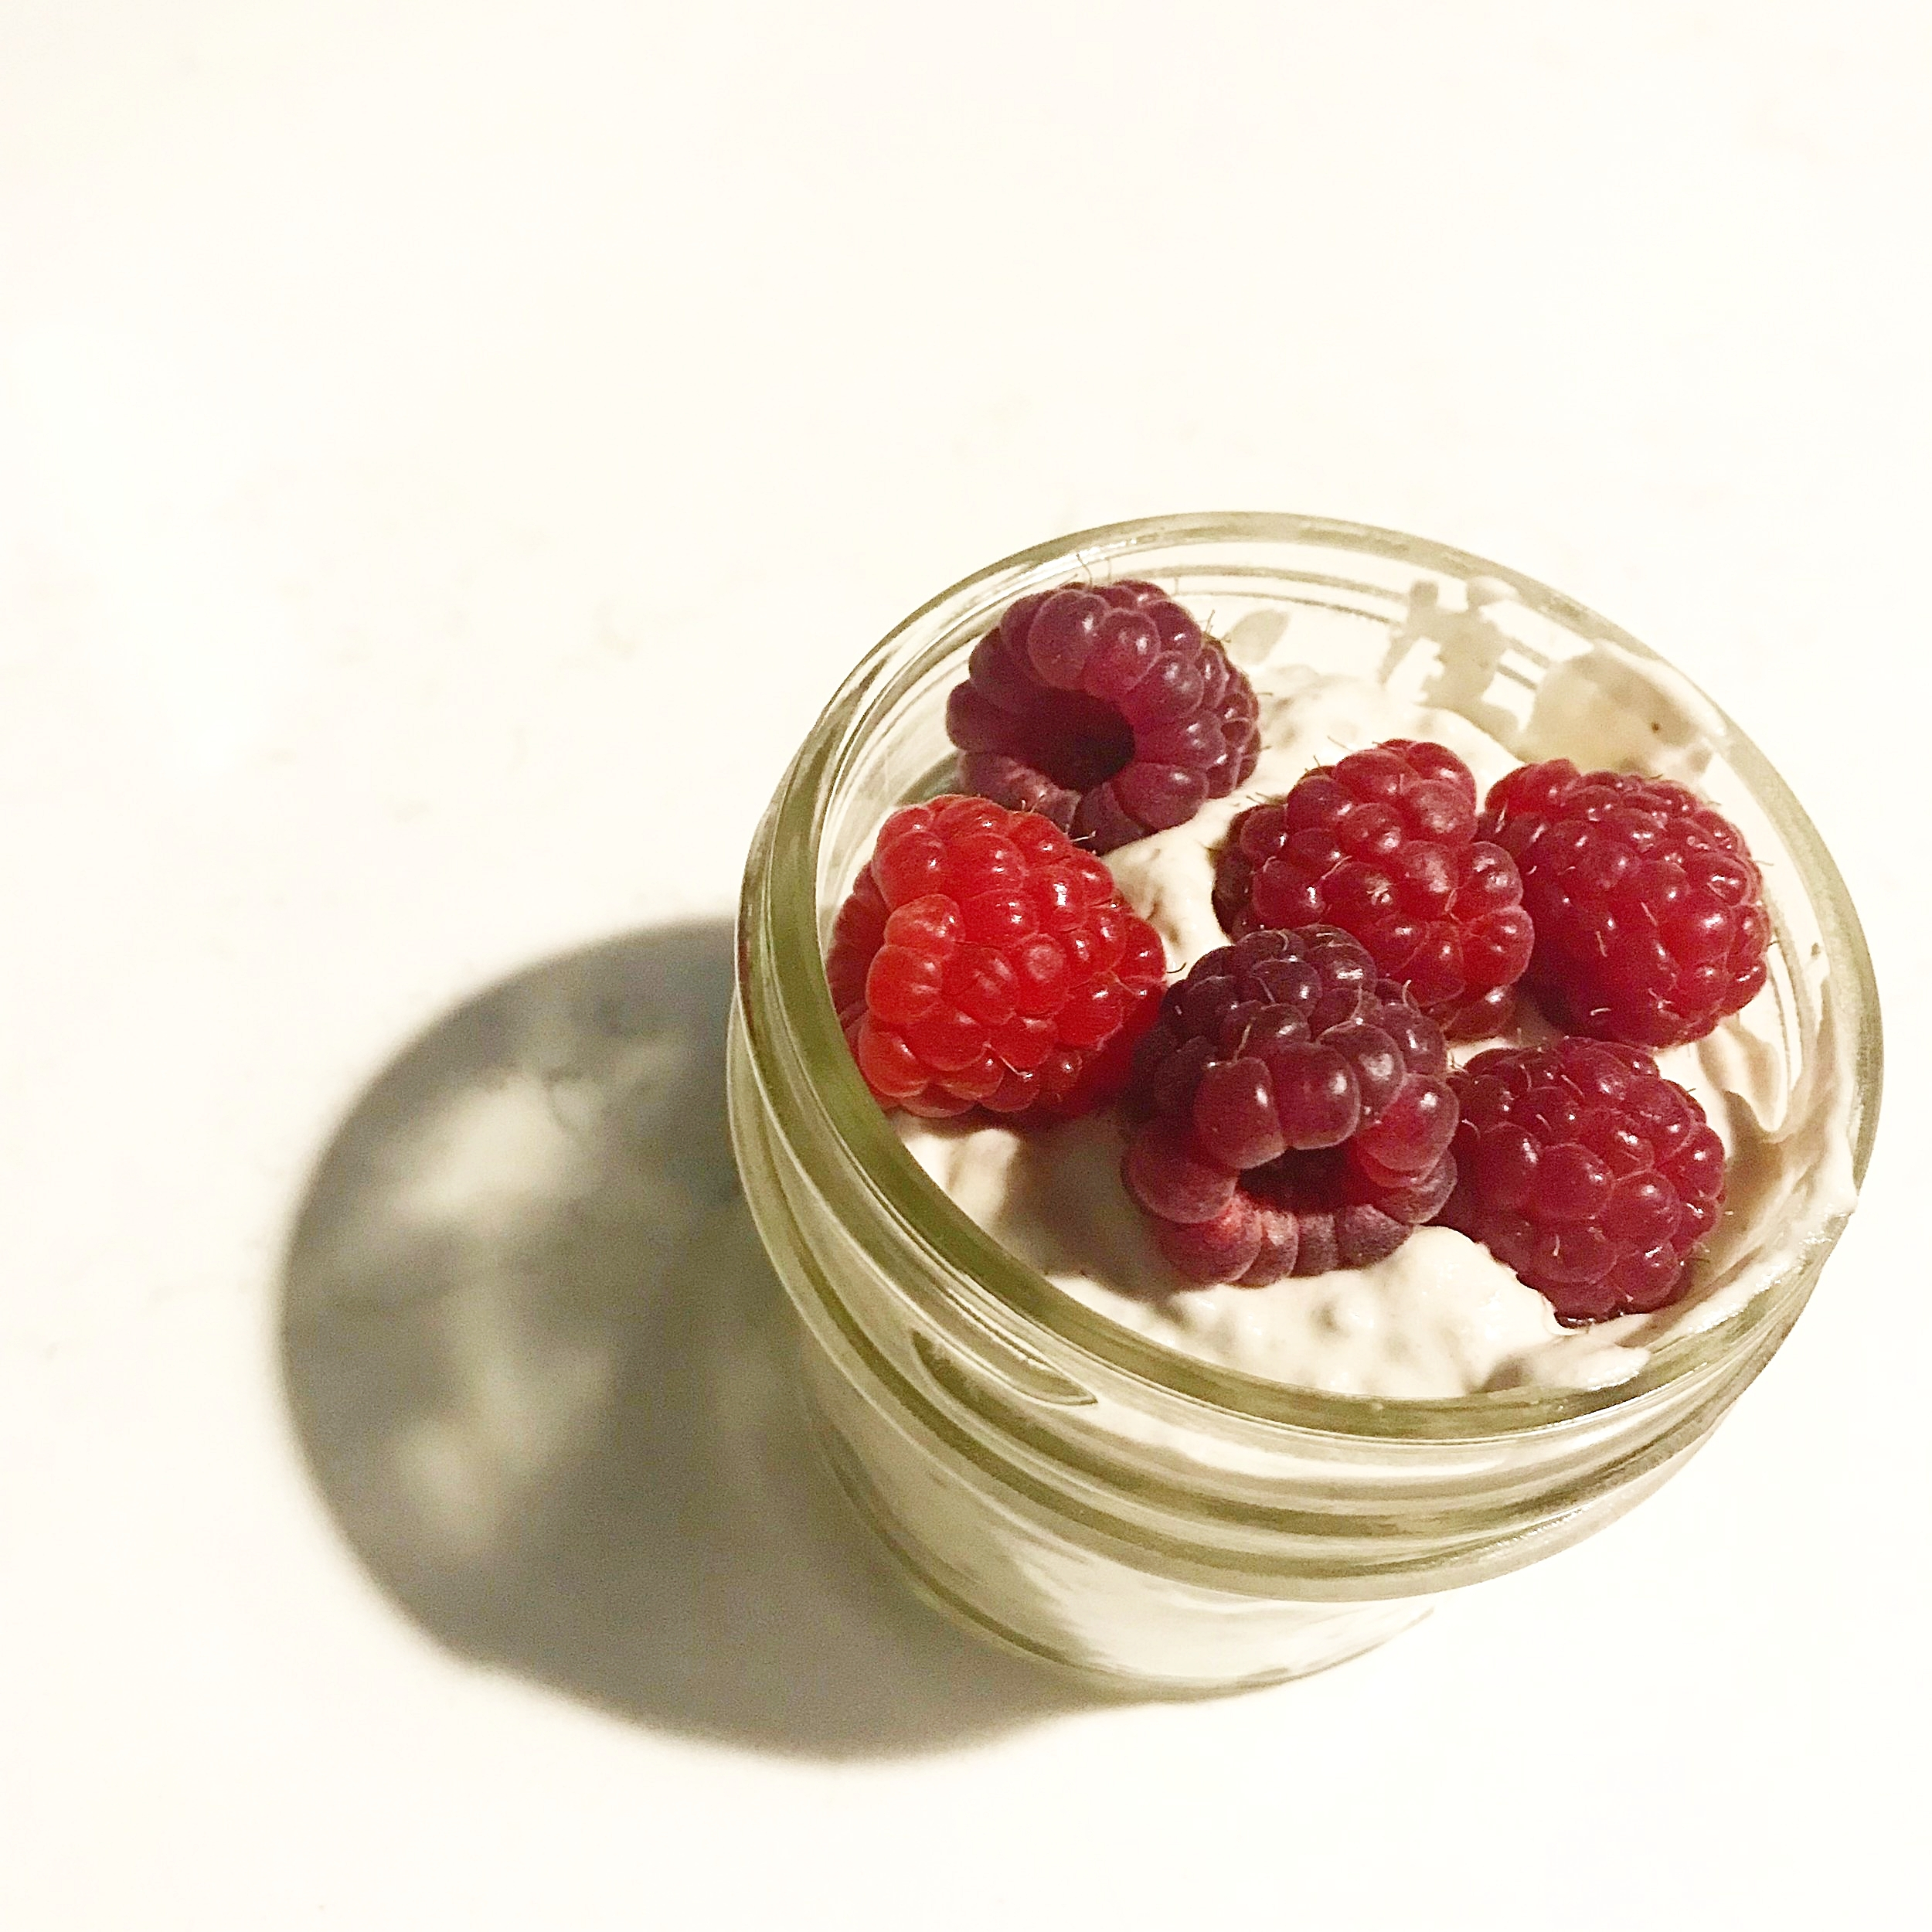 I love making these in individual mason jars for easy snacks on the run